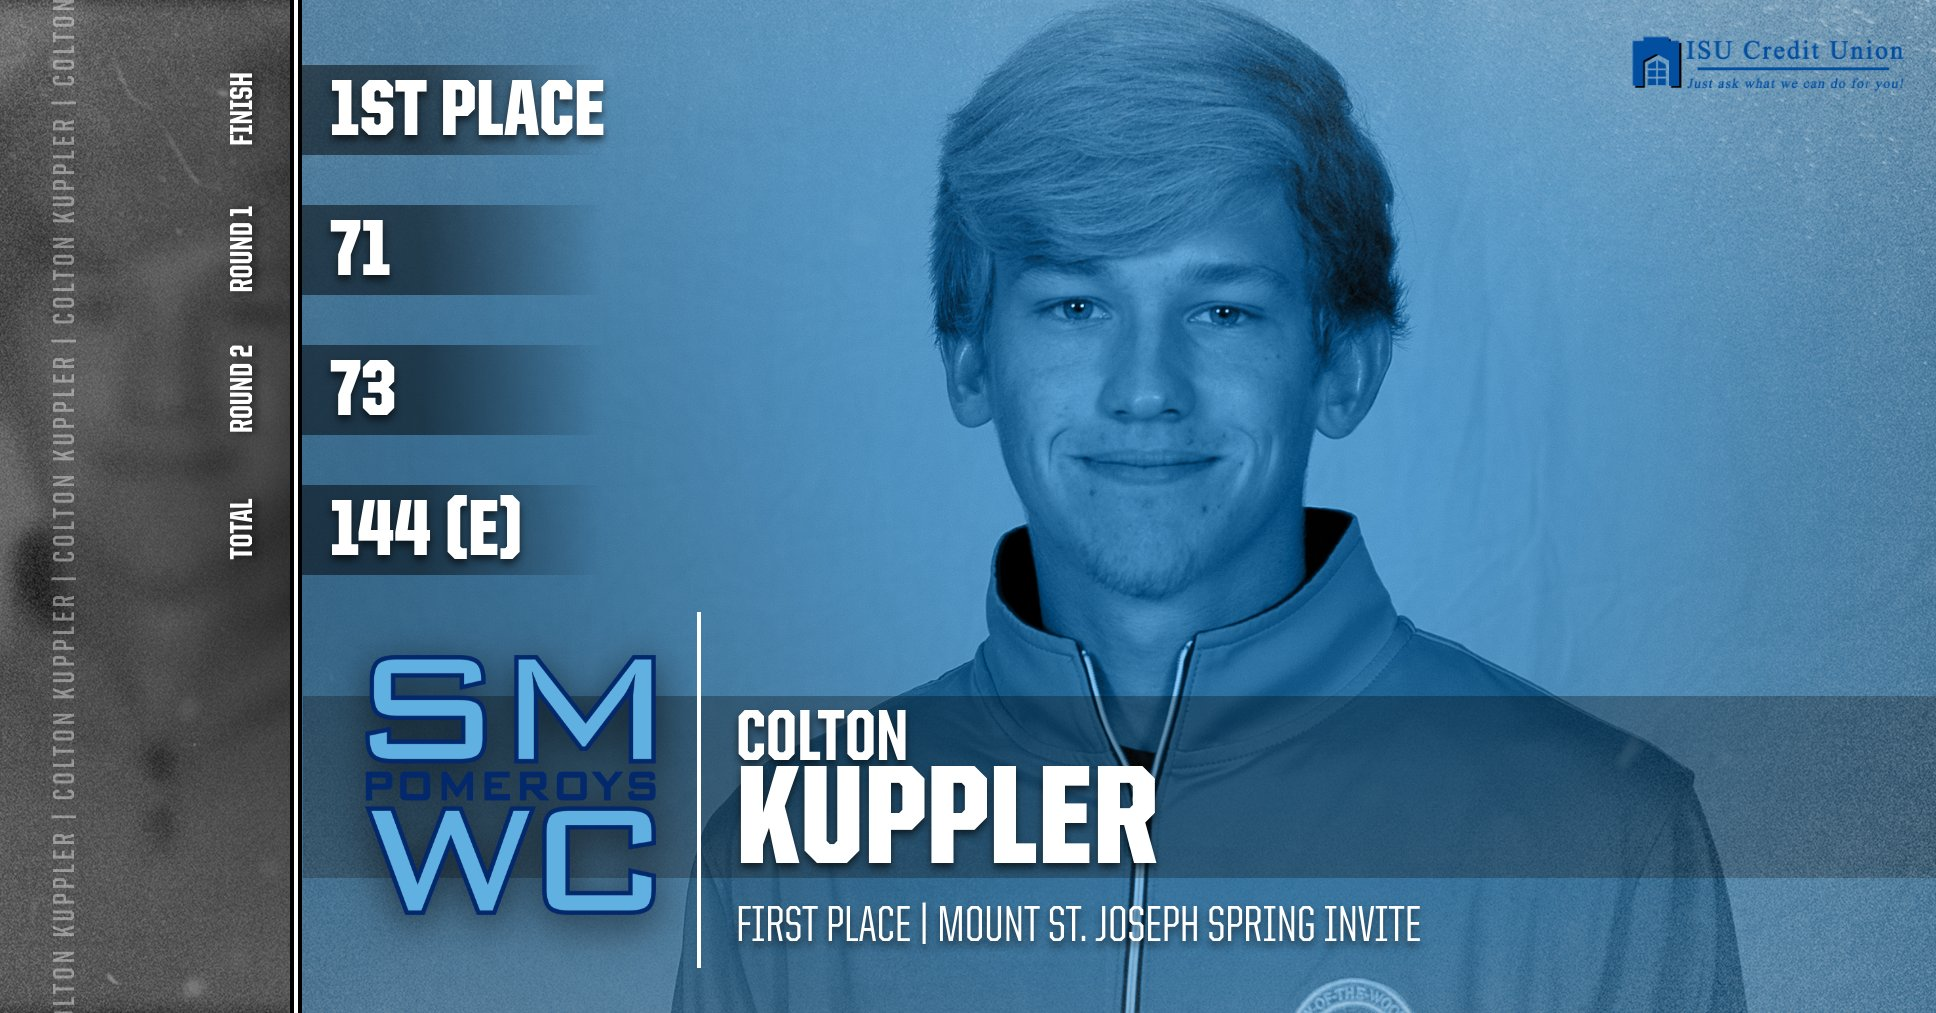 Kuppler Wins the Mount St. Joseph Spring Invite; SMWC Finishes Tied for Fifth Place